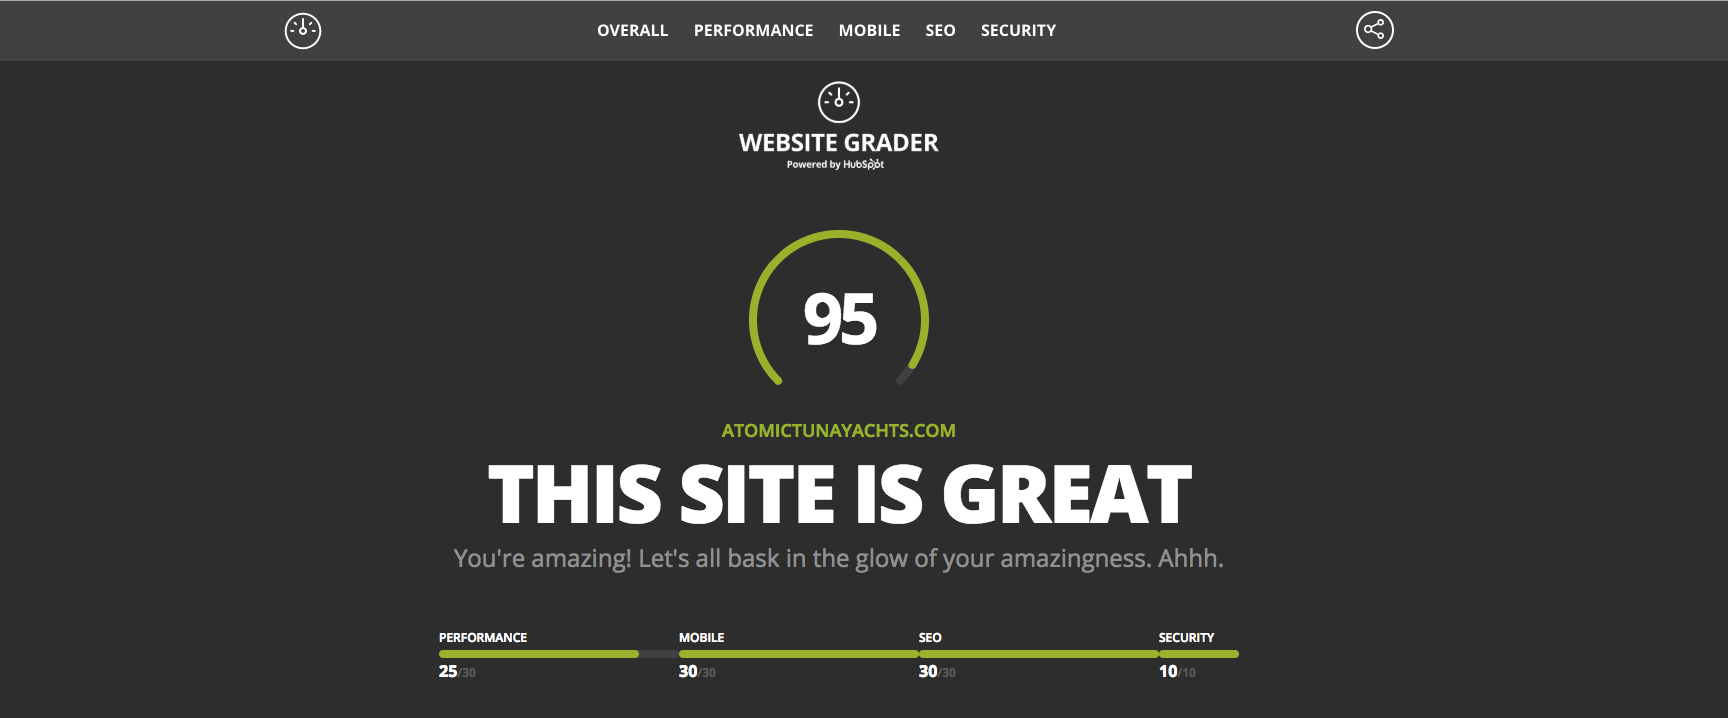 Onsite SEO - Website Grader